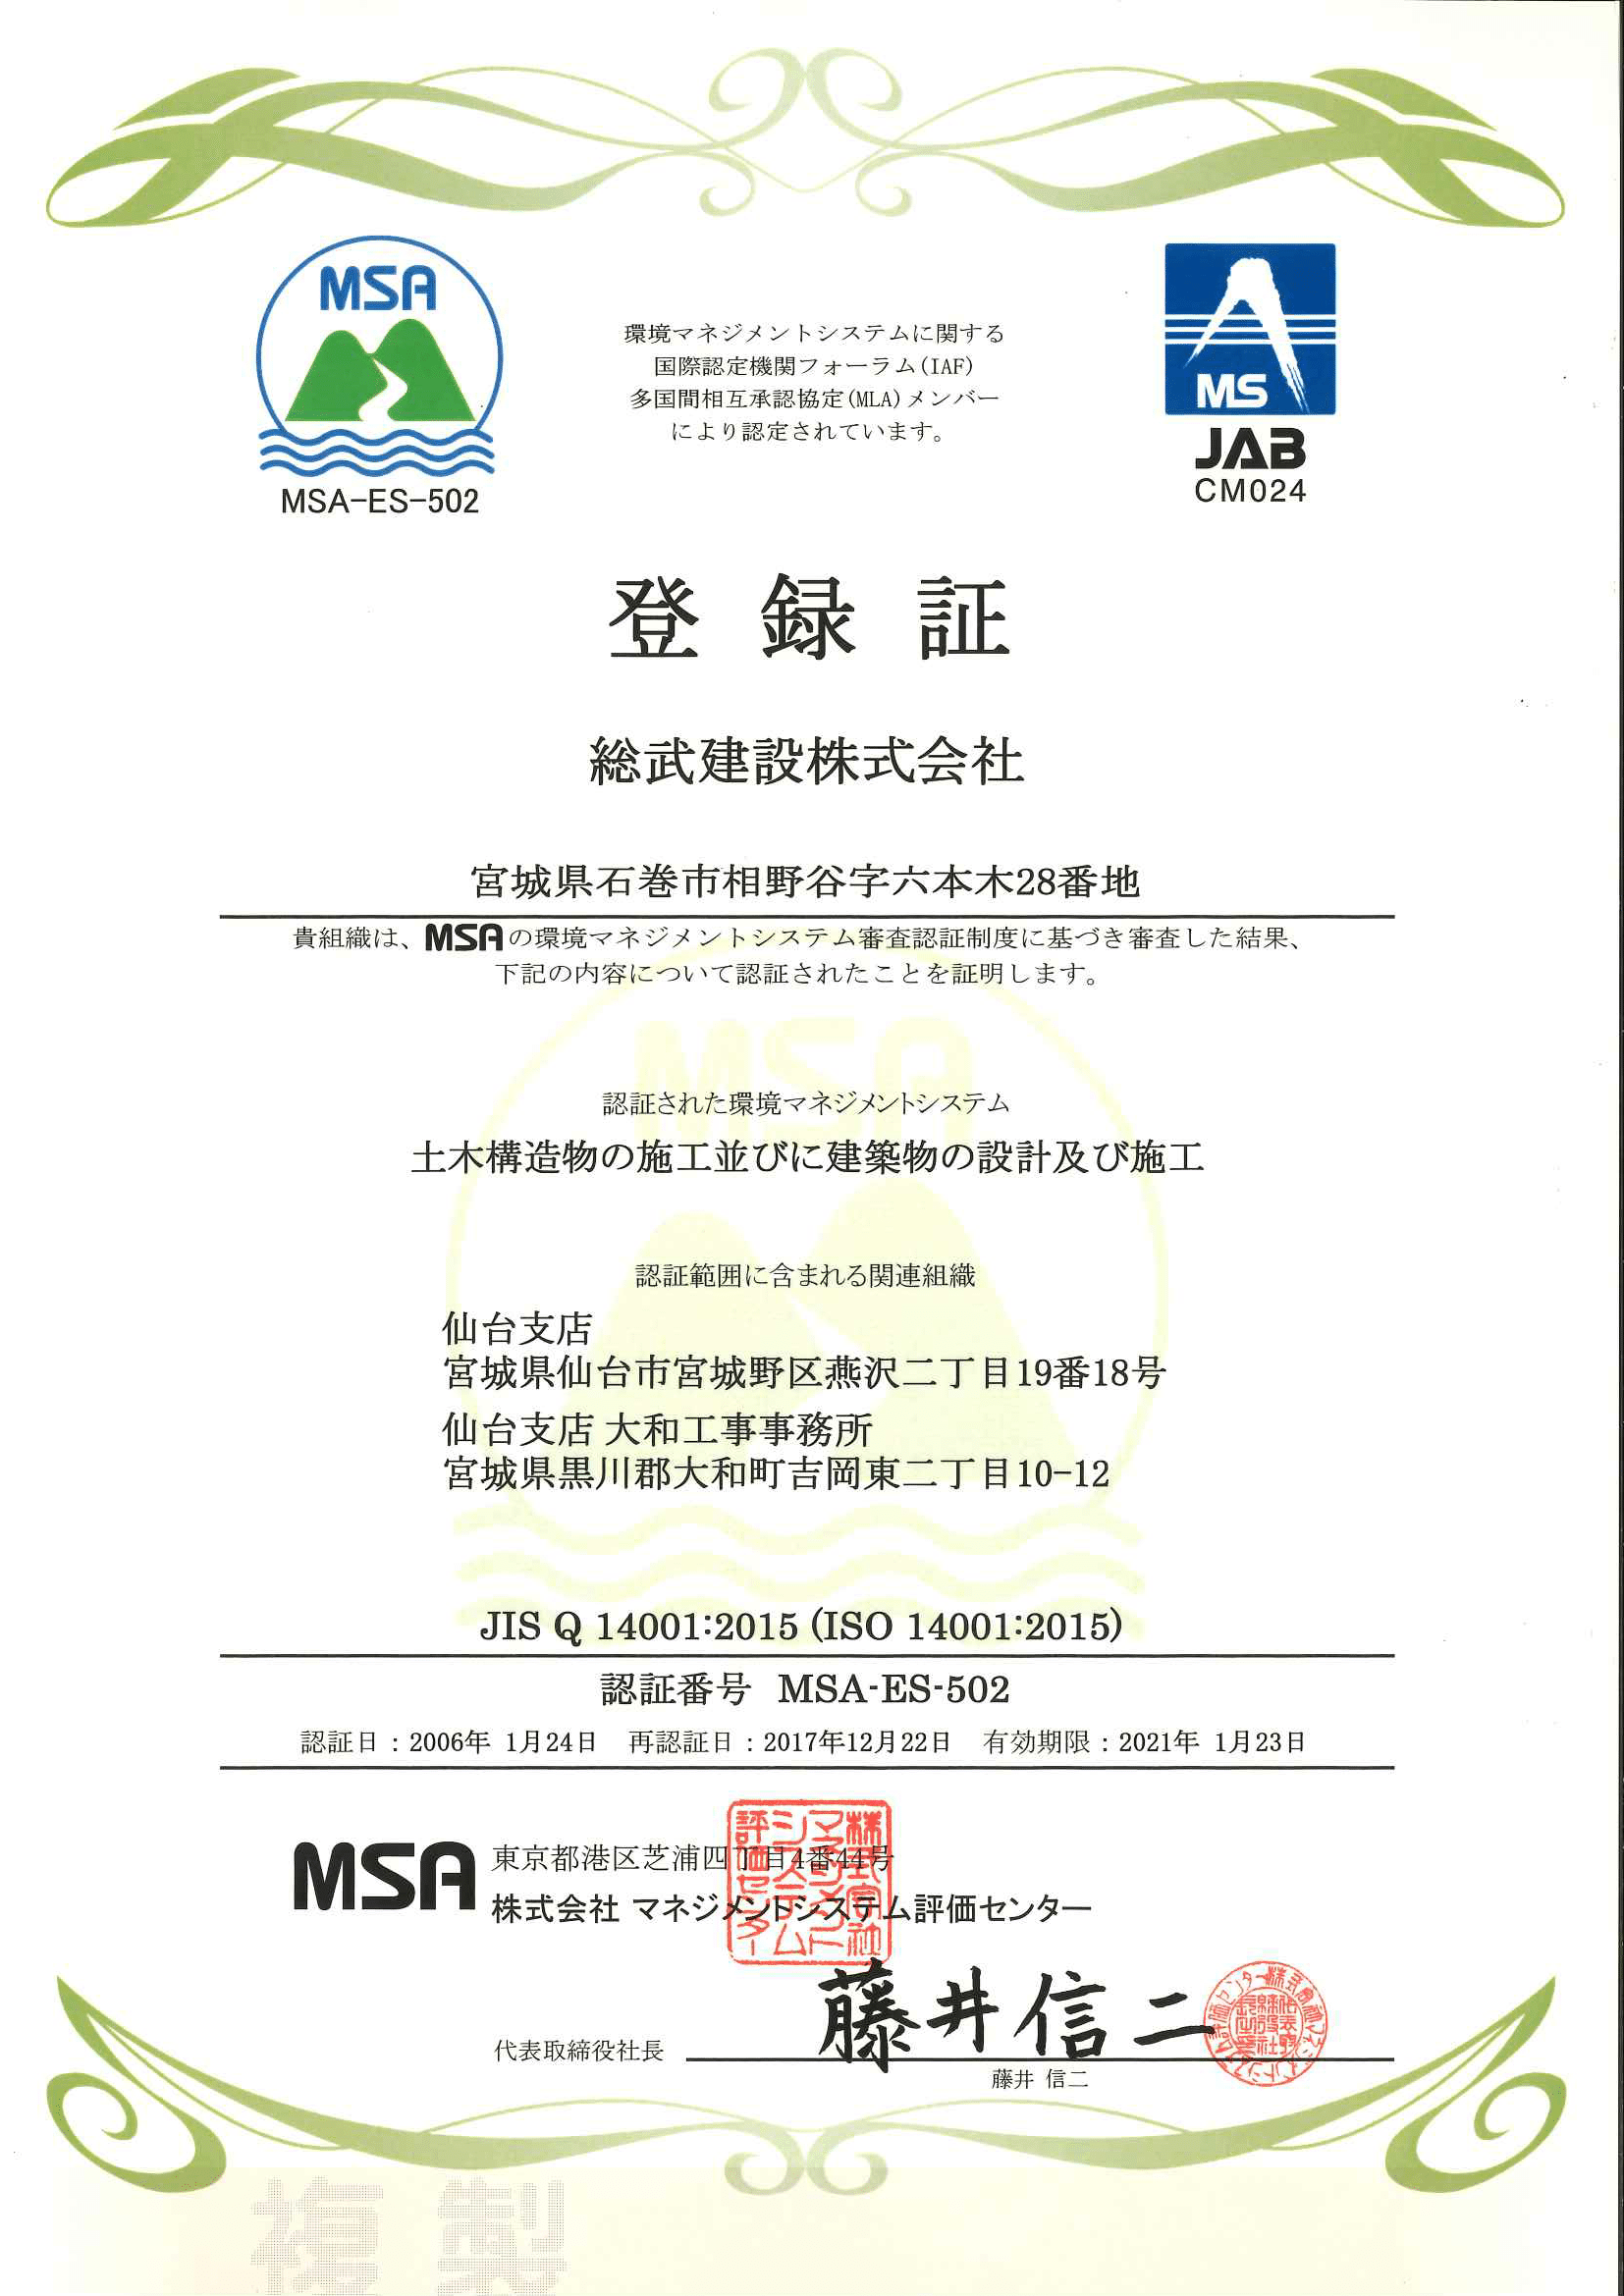 iso14001-2015-1 2.png